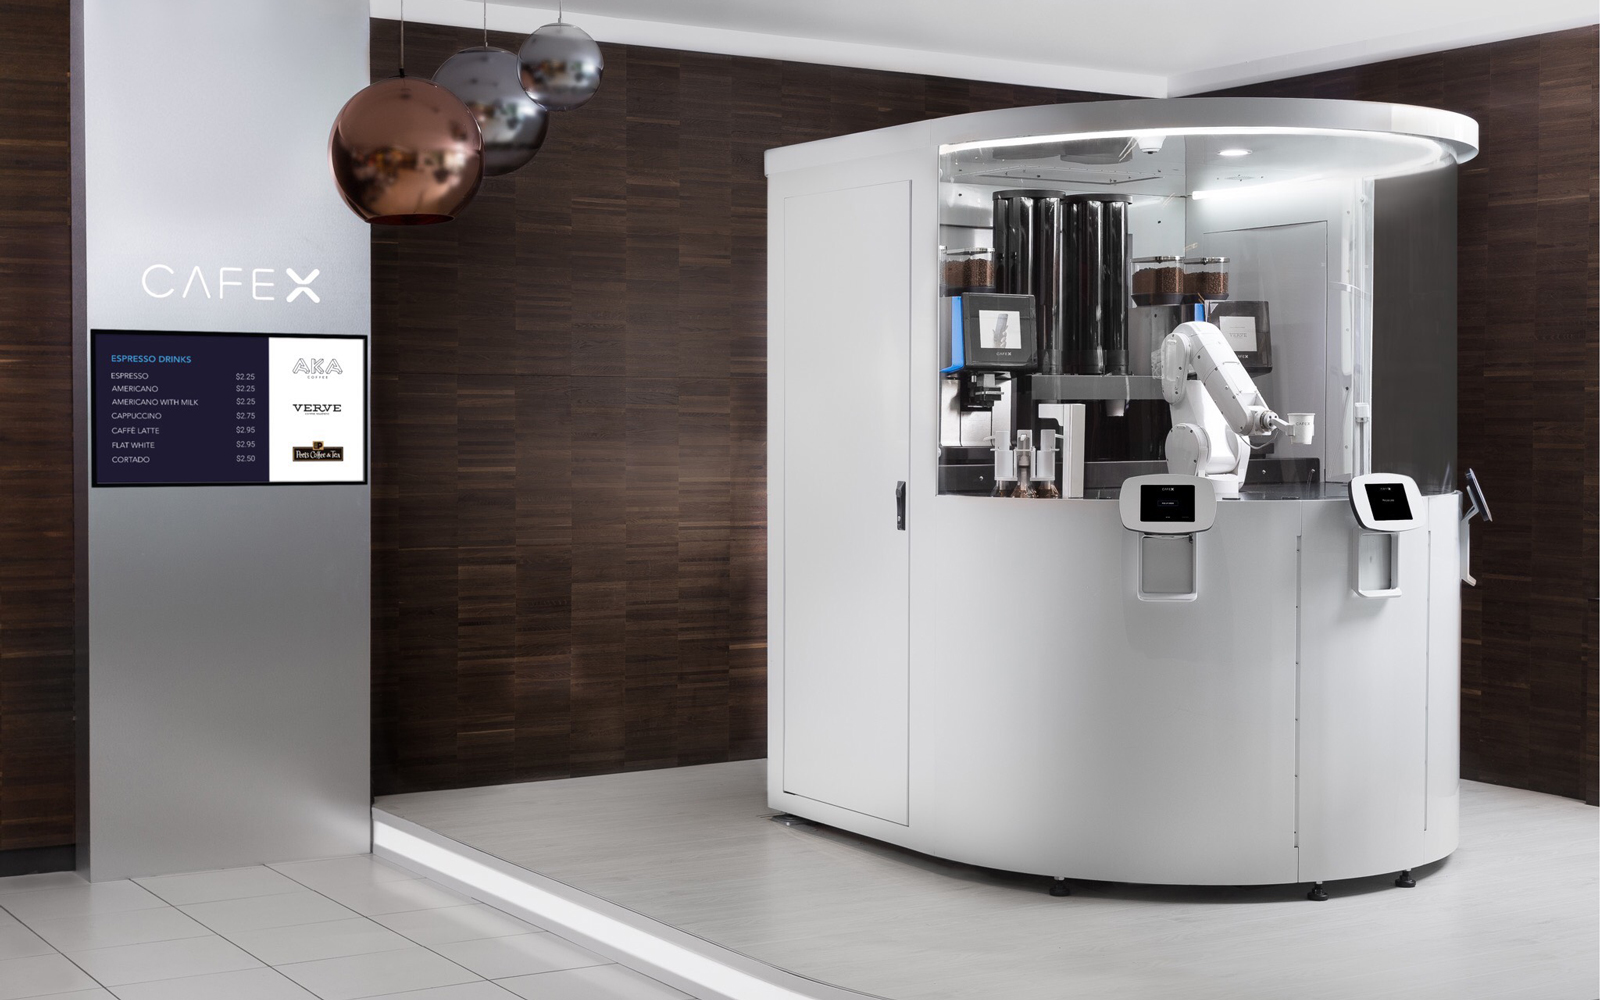 A Robot Will Serve You at This Café in San Francisco